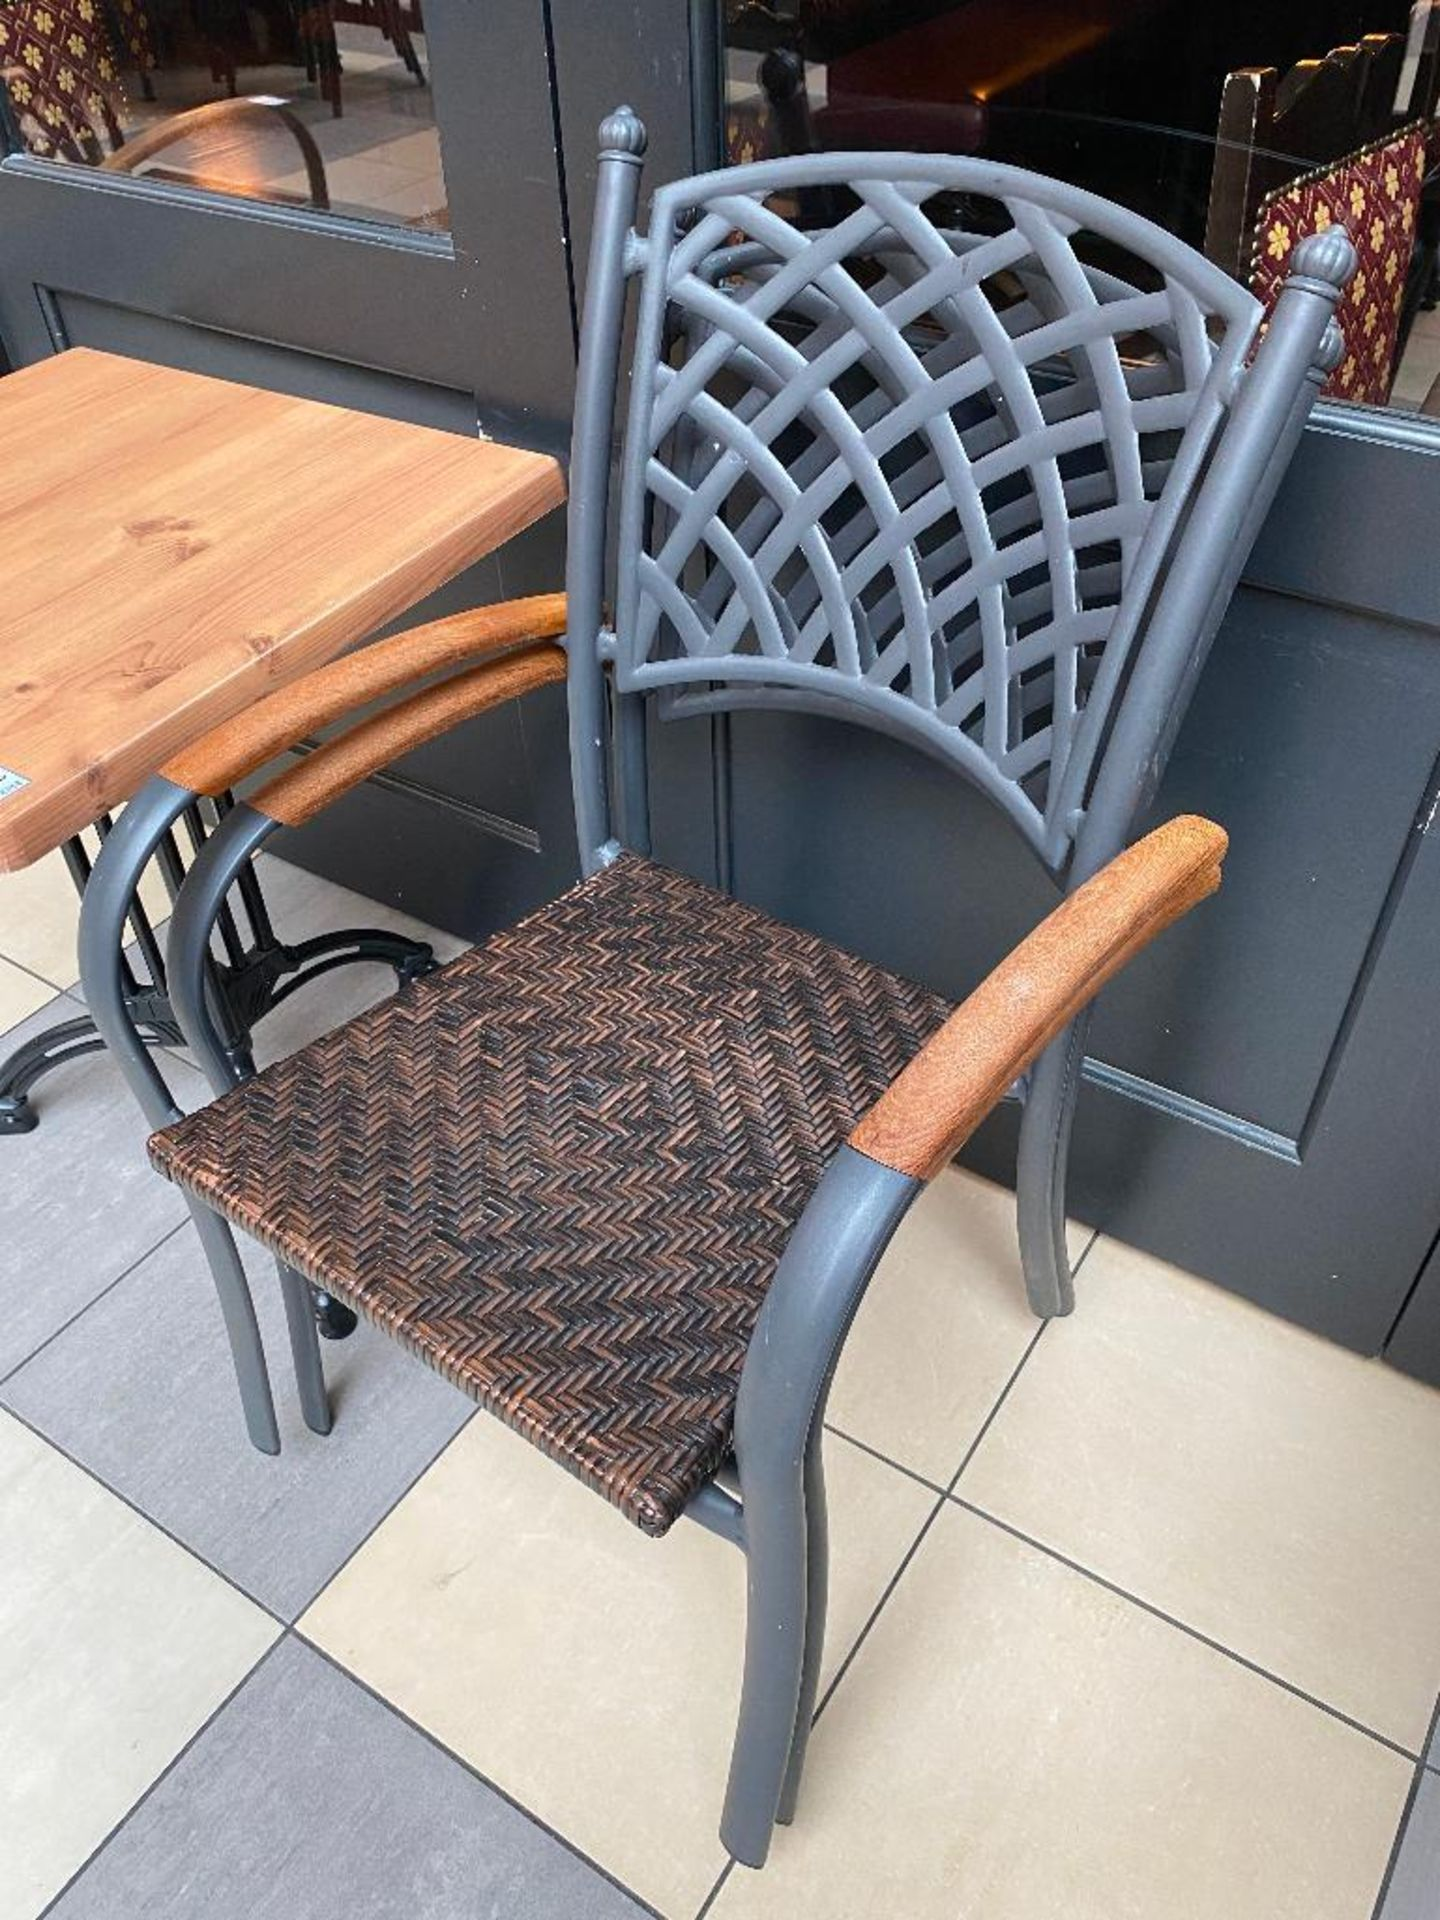 """TOPALIT 23"""" X 23"""" PATIO TABLE WITH 2 CHAIRS - Image 3 of 4"""